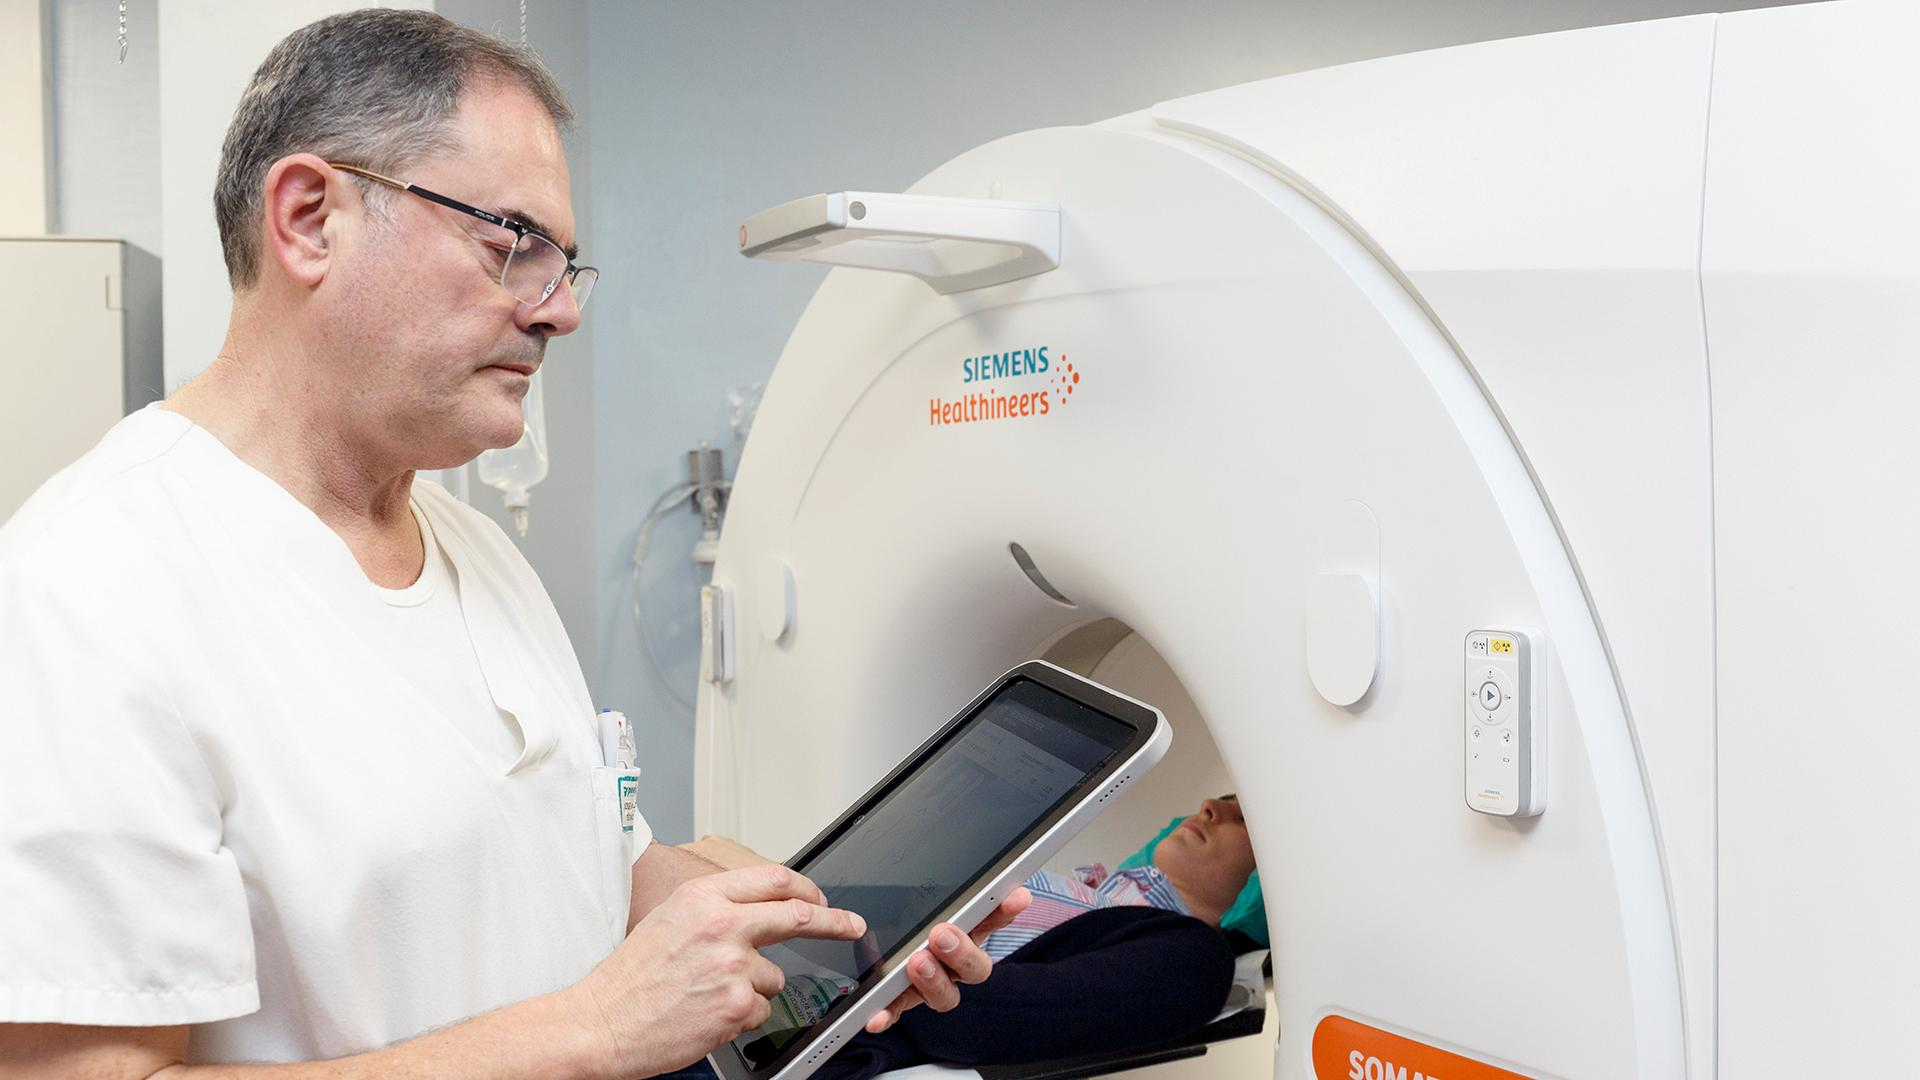 By using a tablet the radiographer can stay longer with his patients.